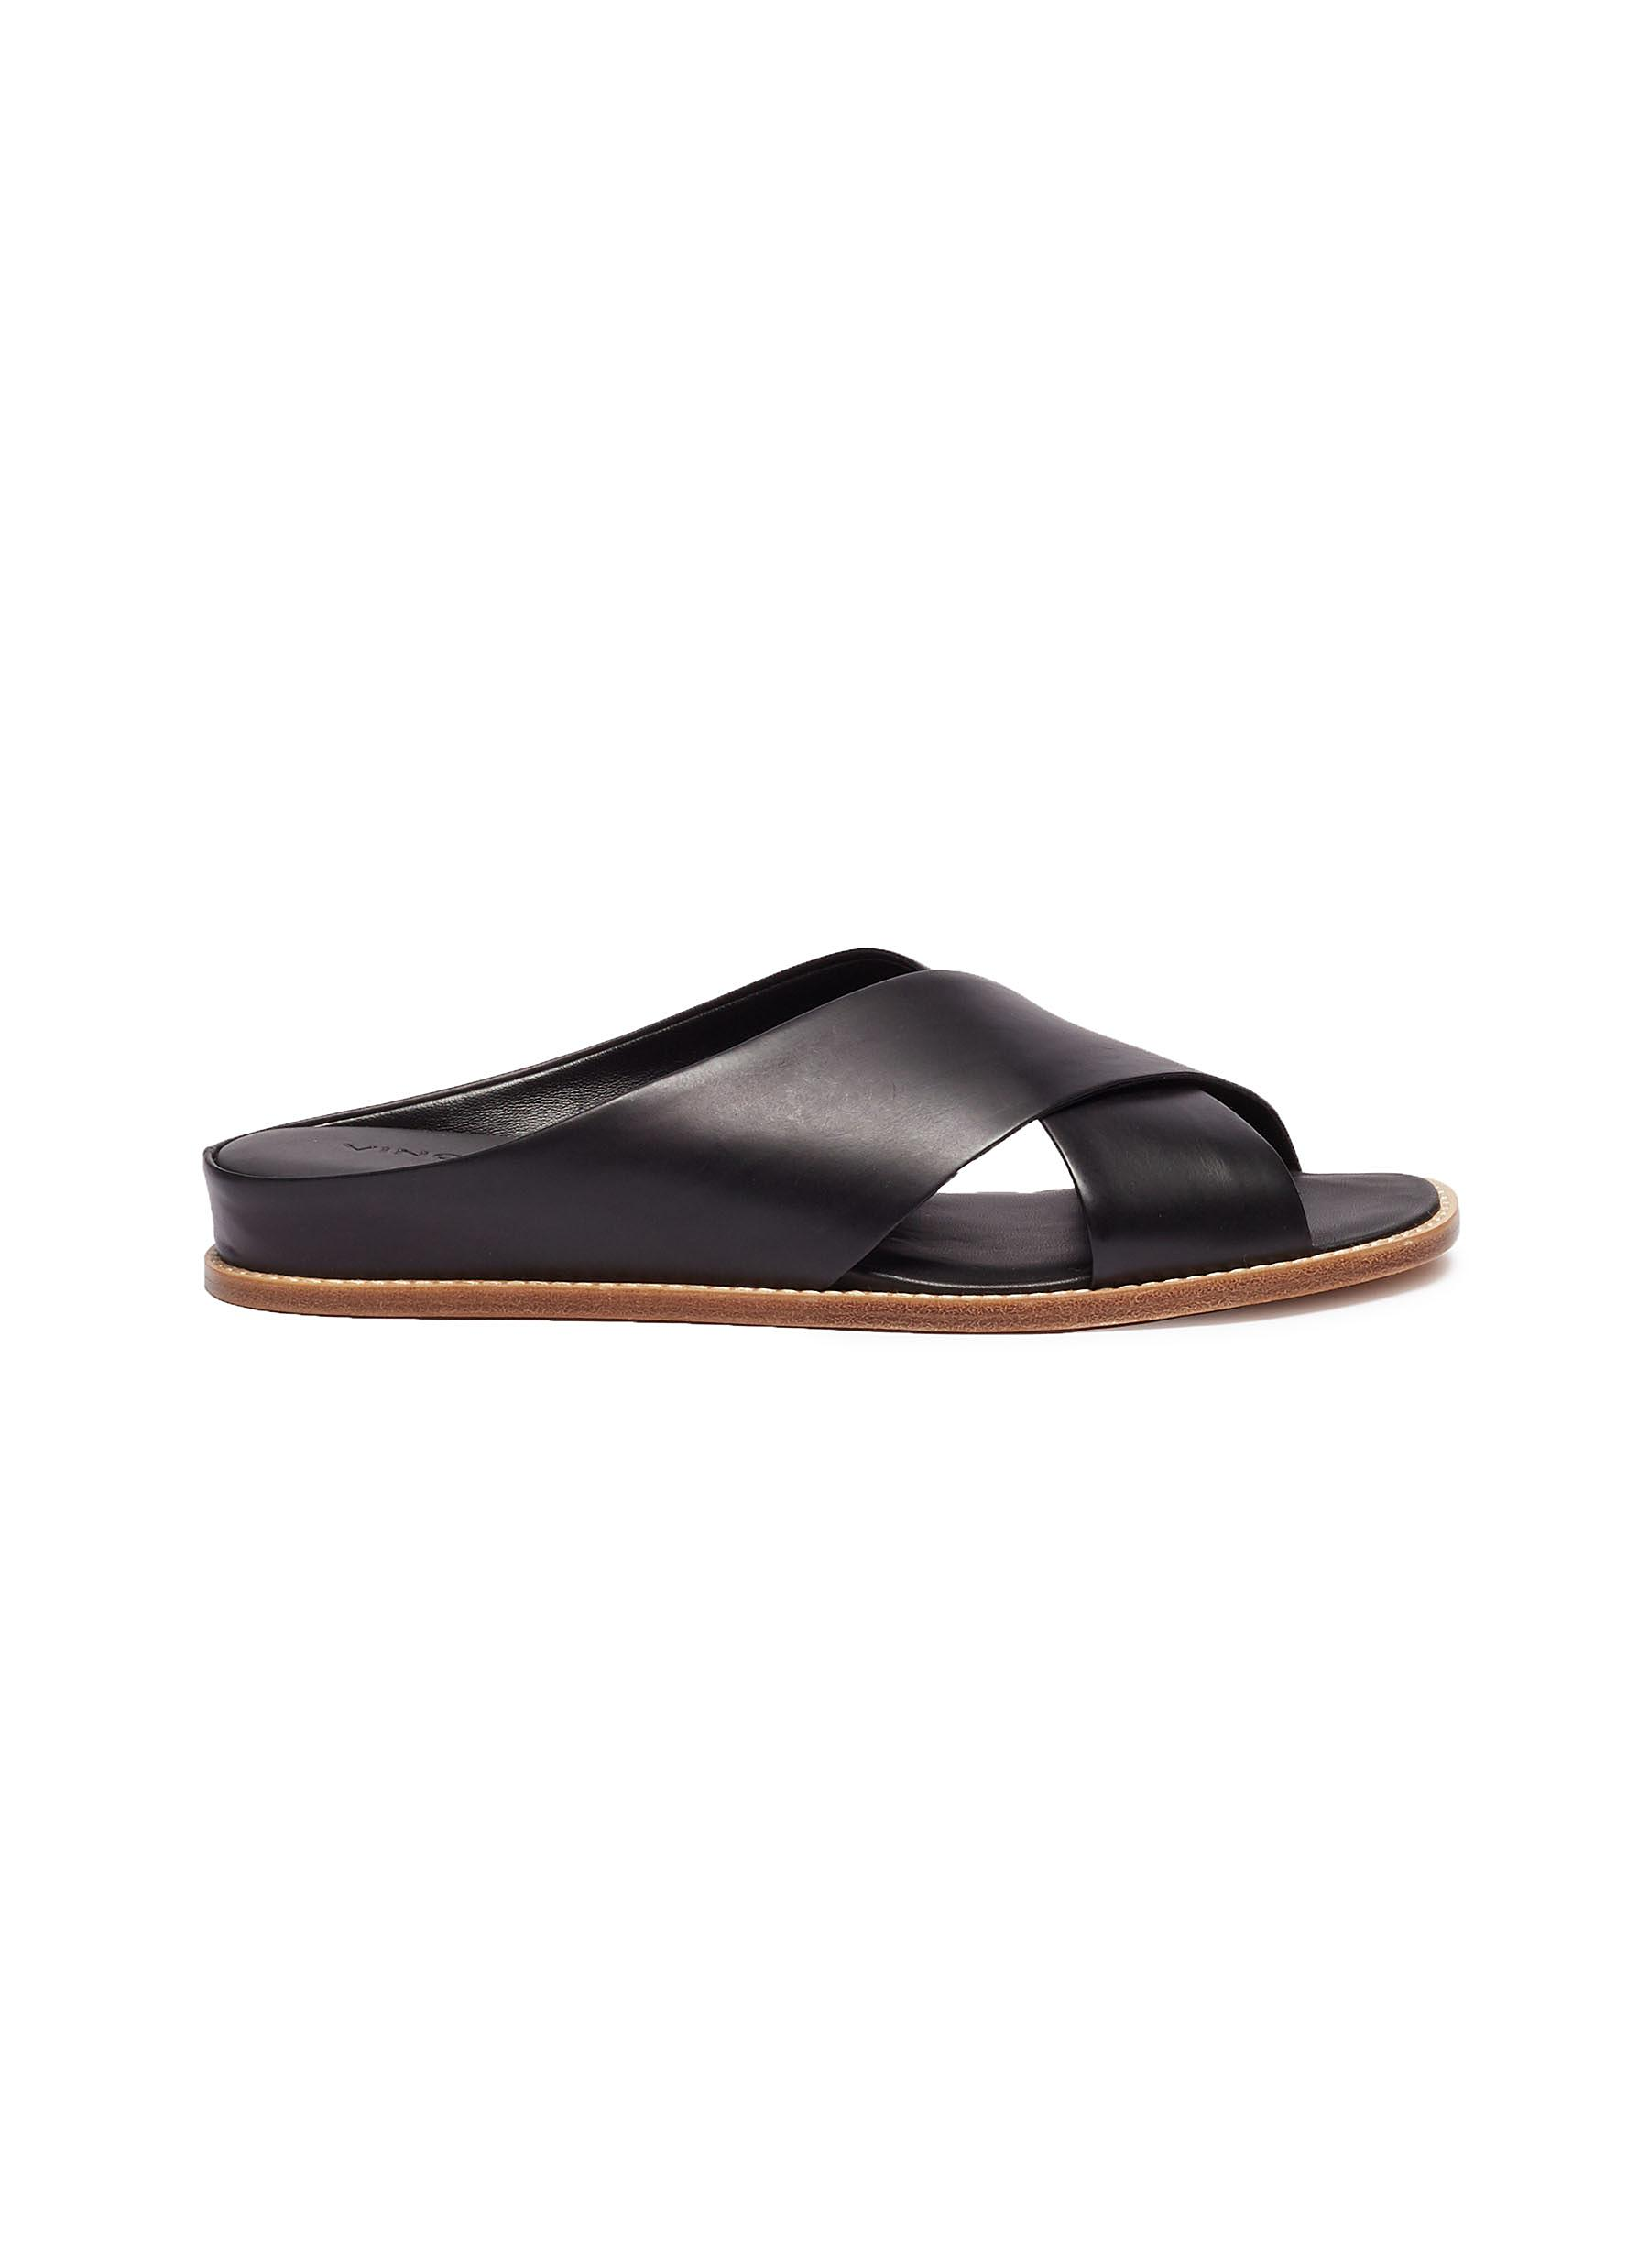 Fairley cross strap leather slide sandals by Vince